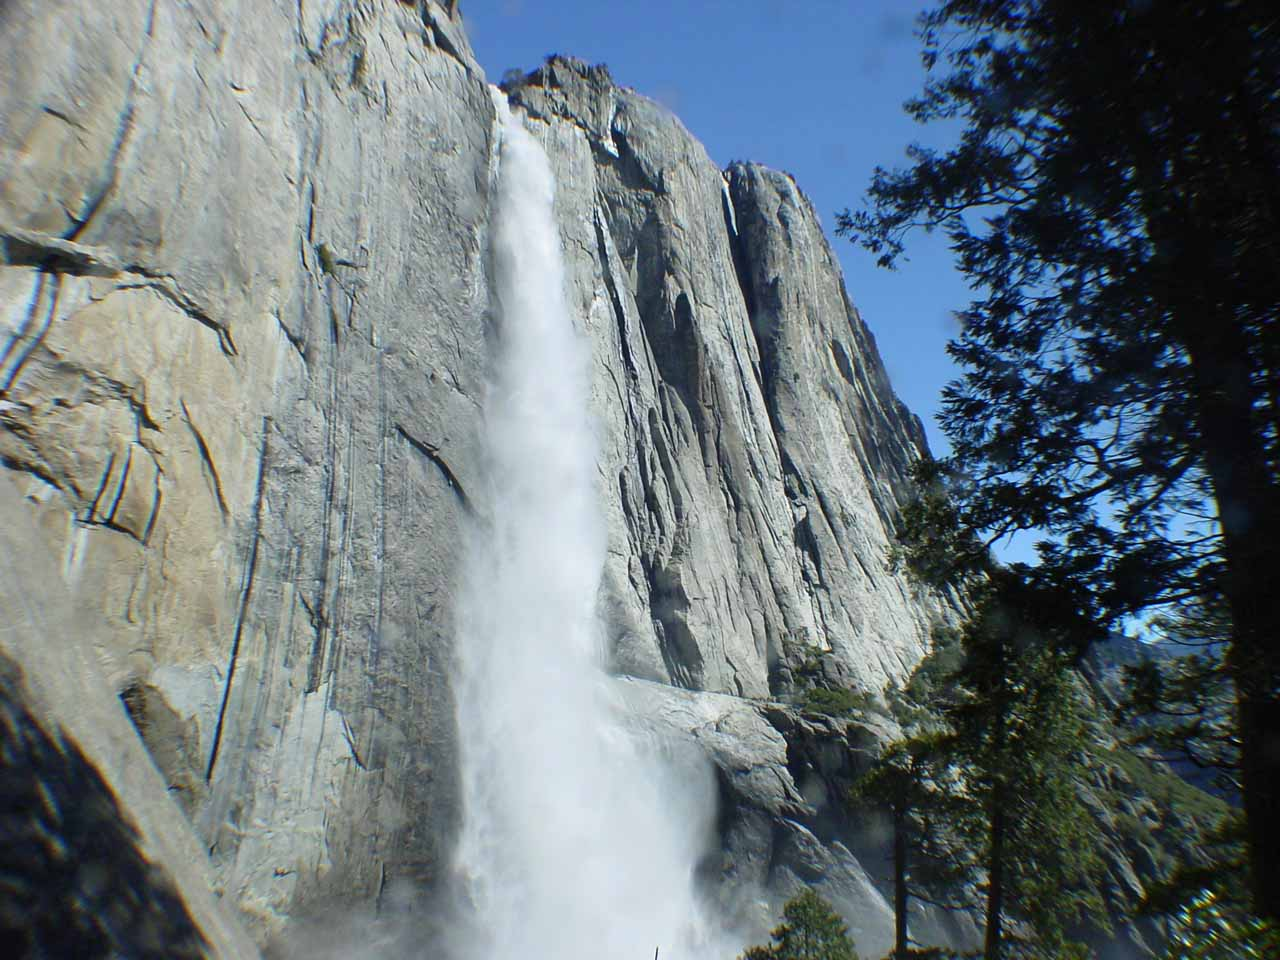 Angled view of Yosemite Falls with some of its mist getting to the granite steps we were on